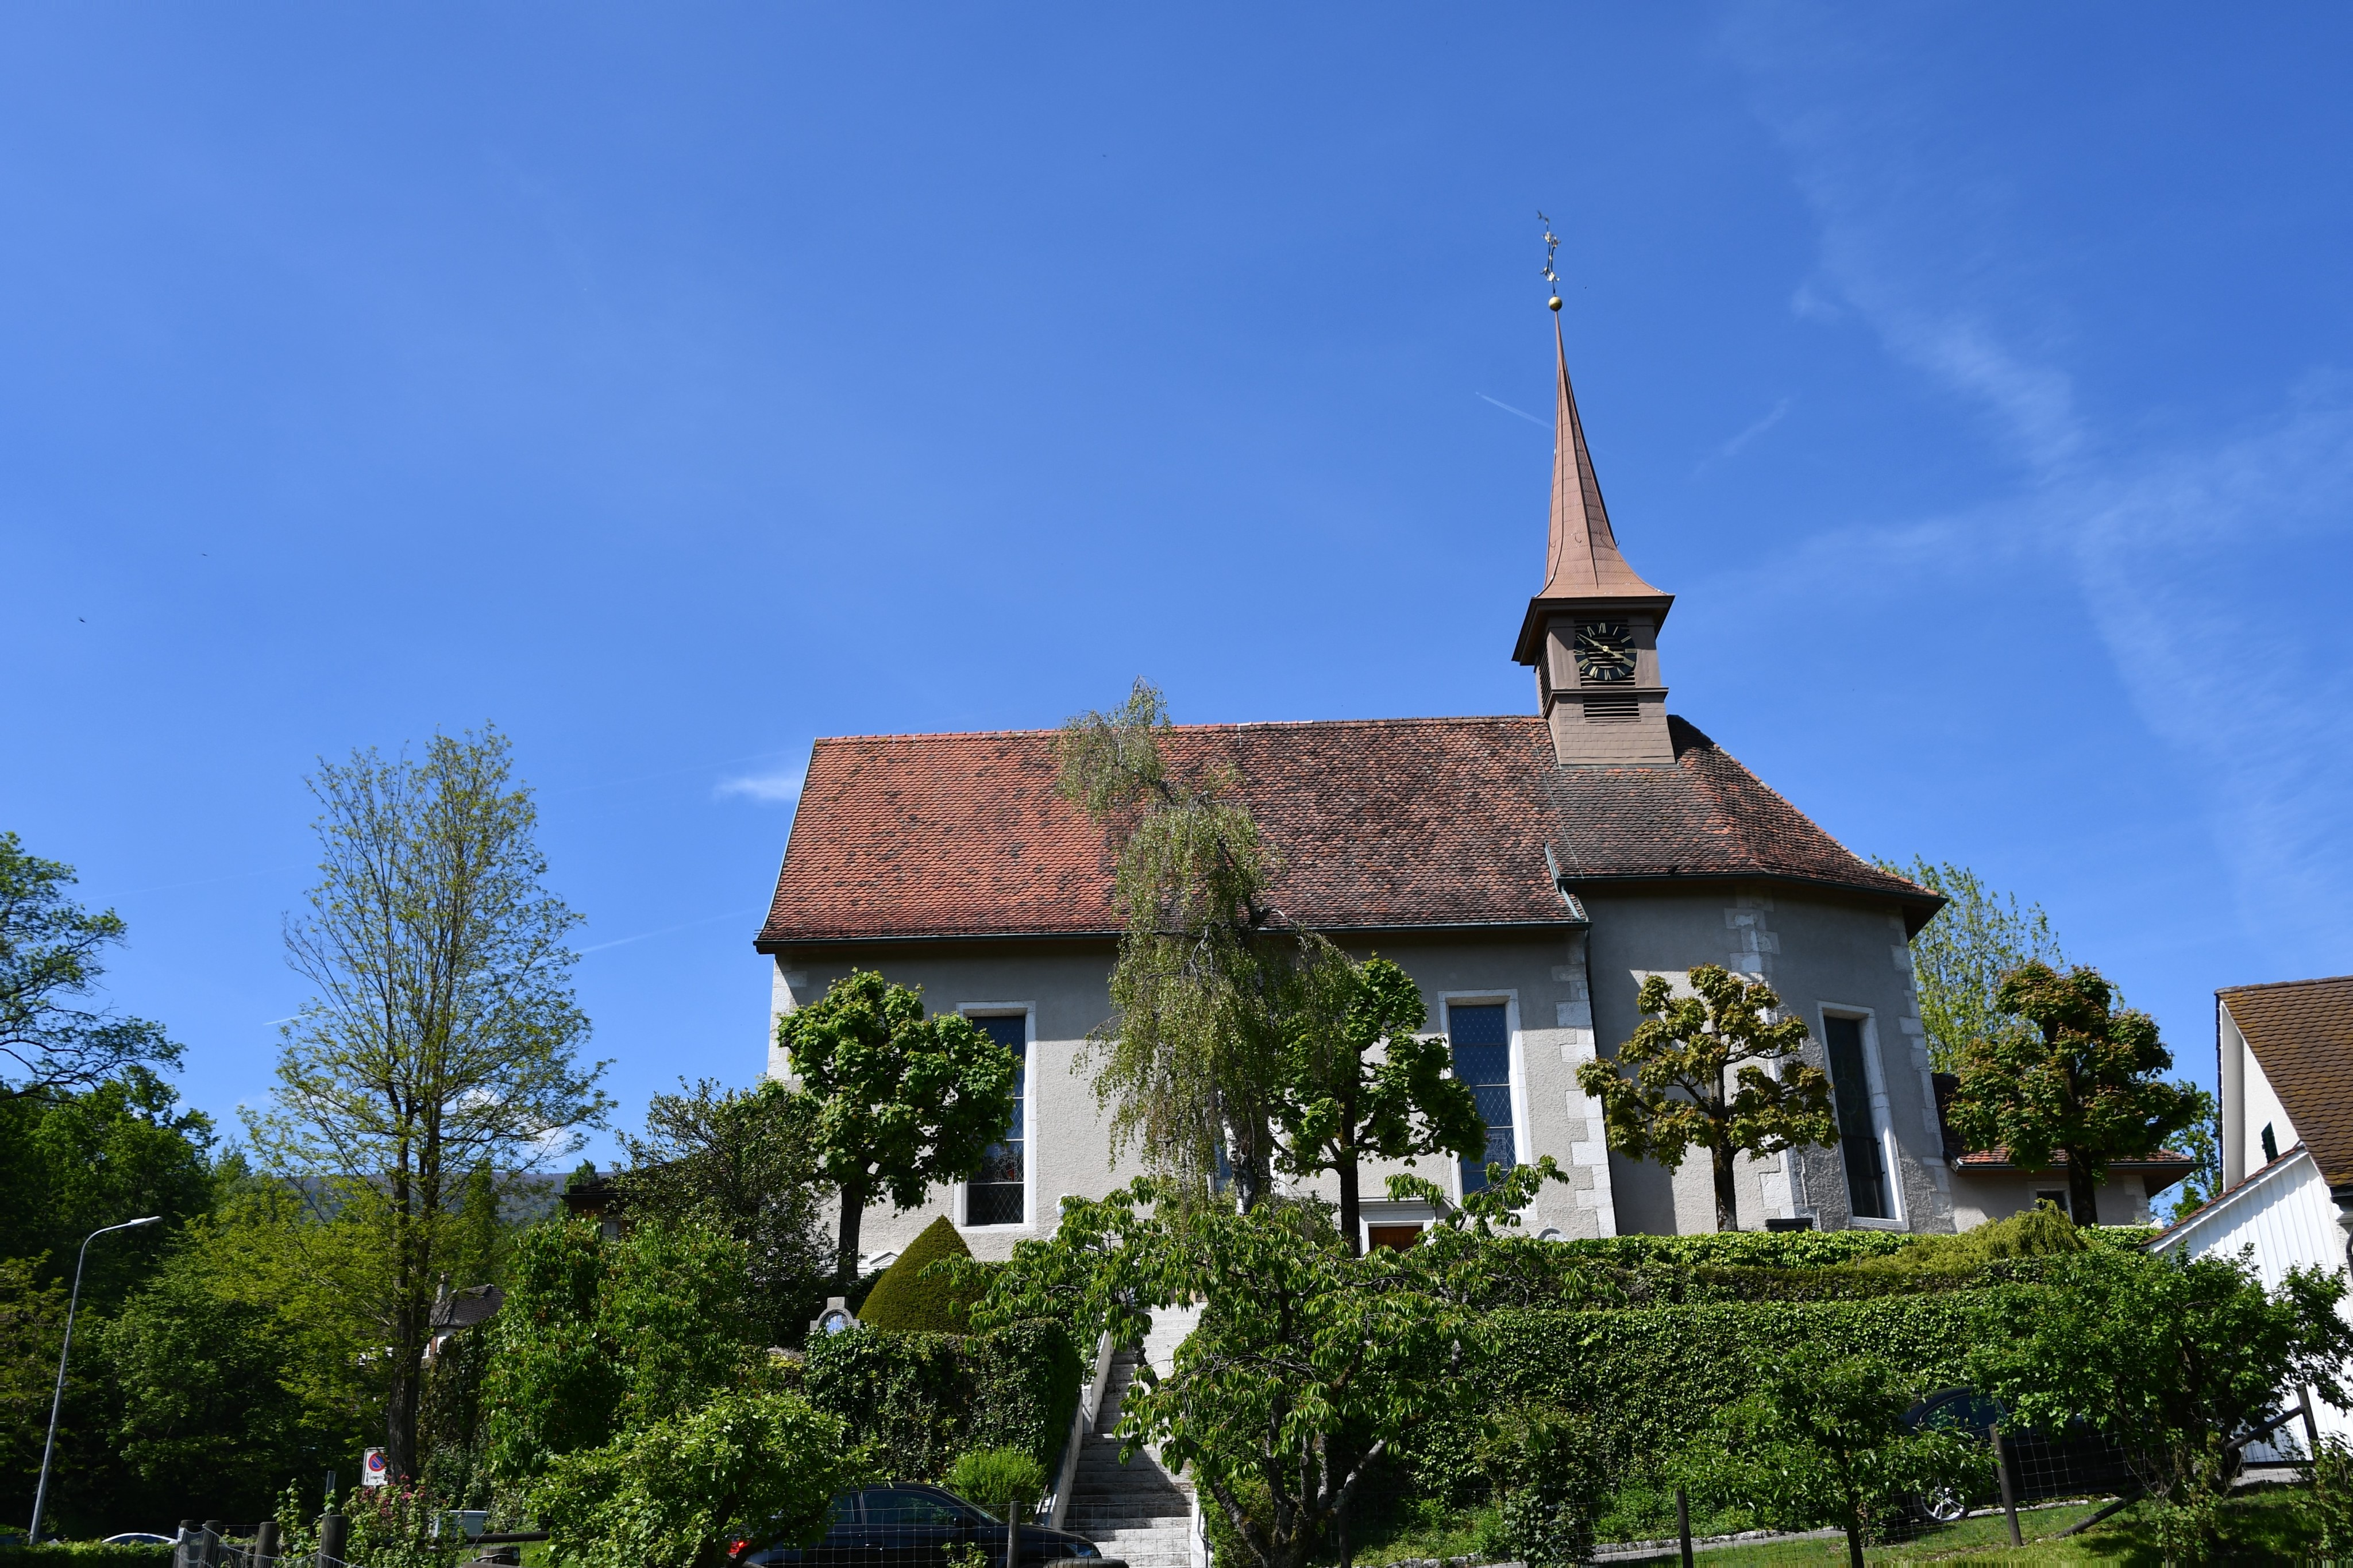 feldbrunnen-church-23.05.2019